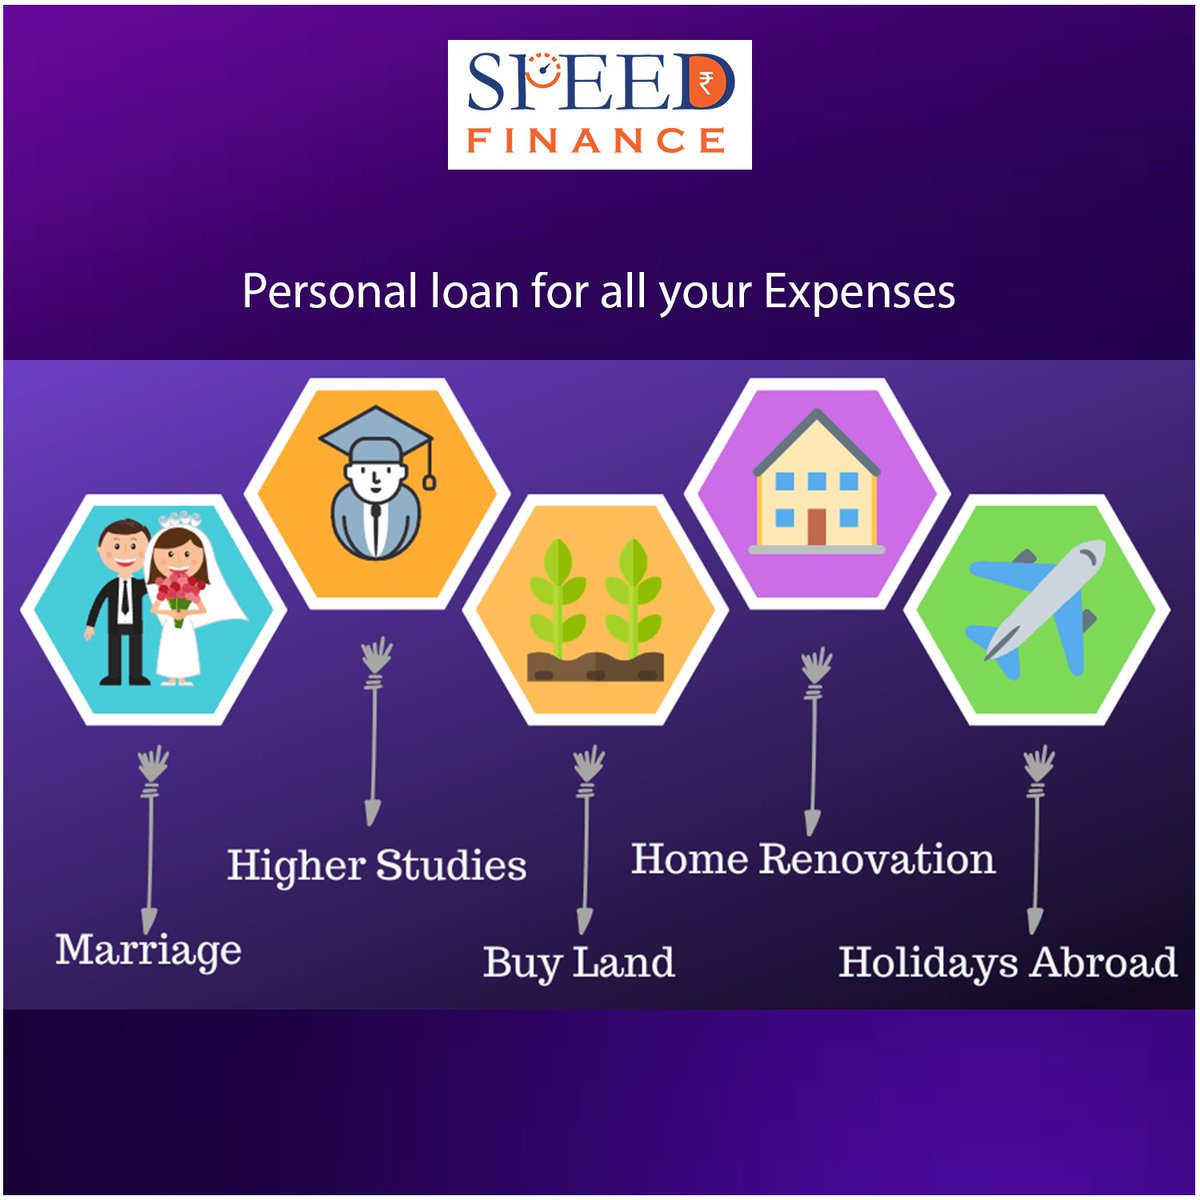 #SpeedFinance an initiative of #EarnWealth, is the easiest way to get an instant personal loan online. This is an Instant Loan app for every Indian. Download App now :  #HappyNewYear #Speedfinace #madeforindian